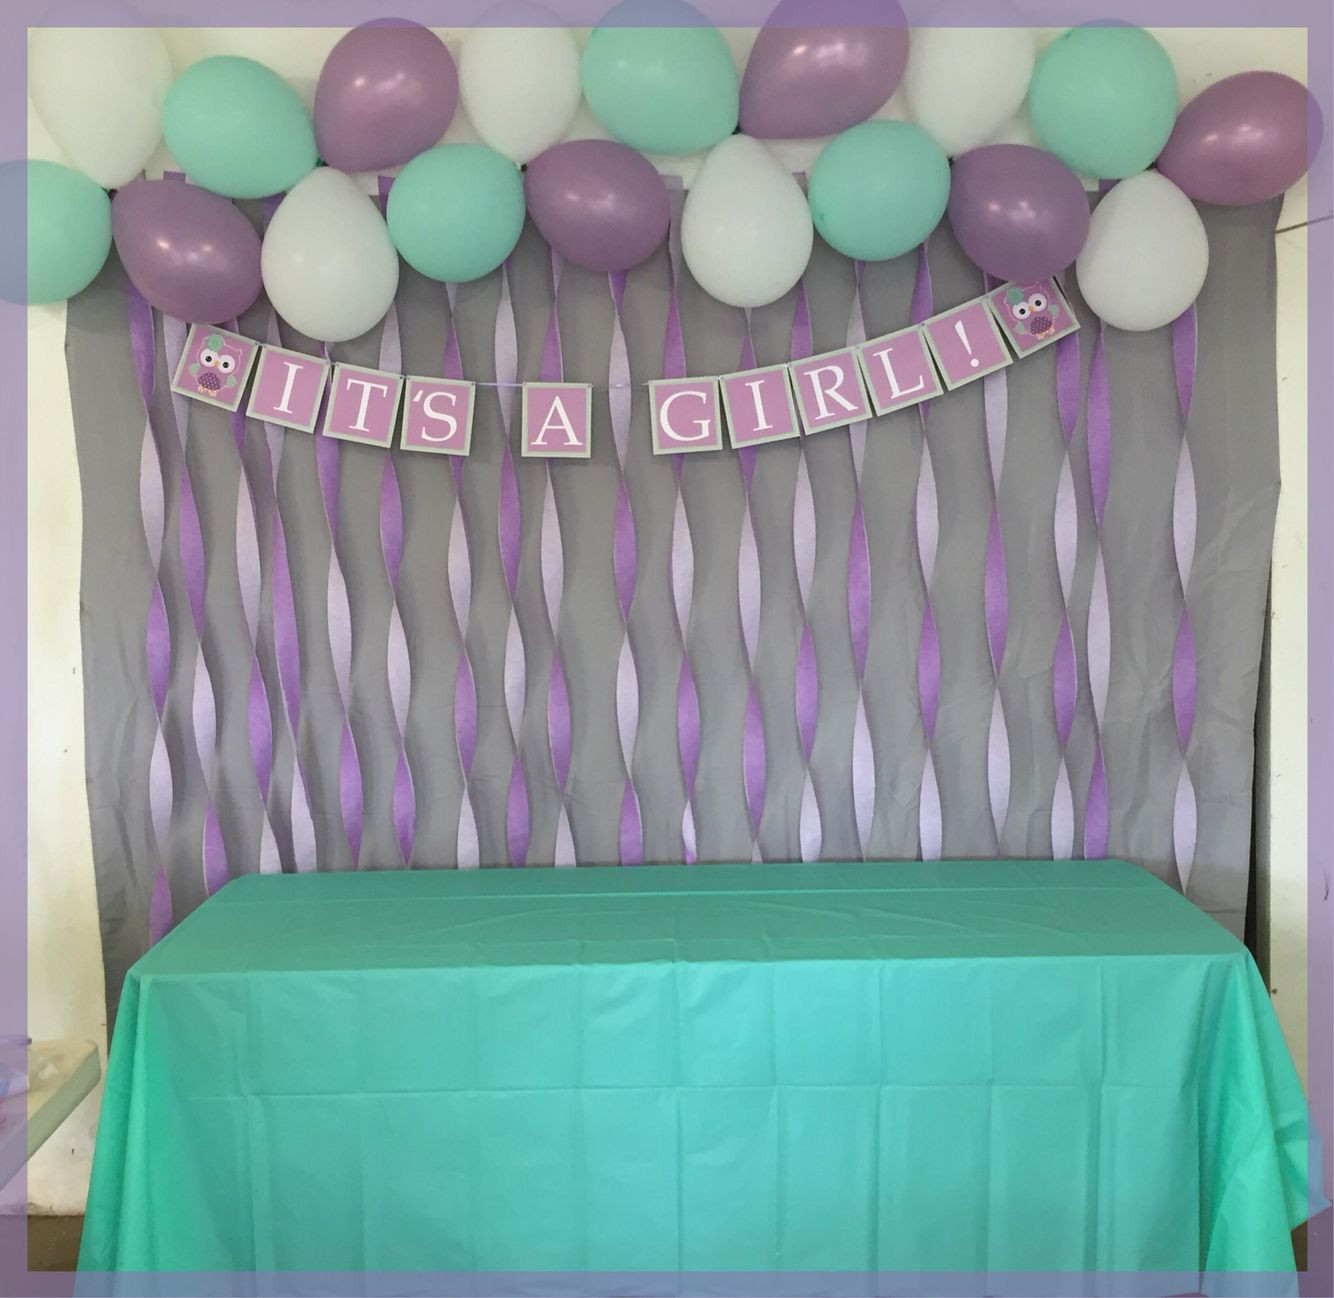 Best ideas about DIY Homemade Baby Shower Decorations . Save or Pin Best 25 Diy baby shower decorations ideas on Pinterest Now.